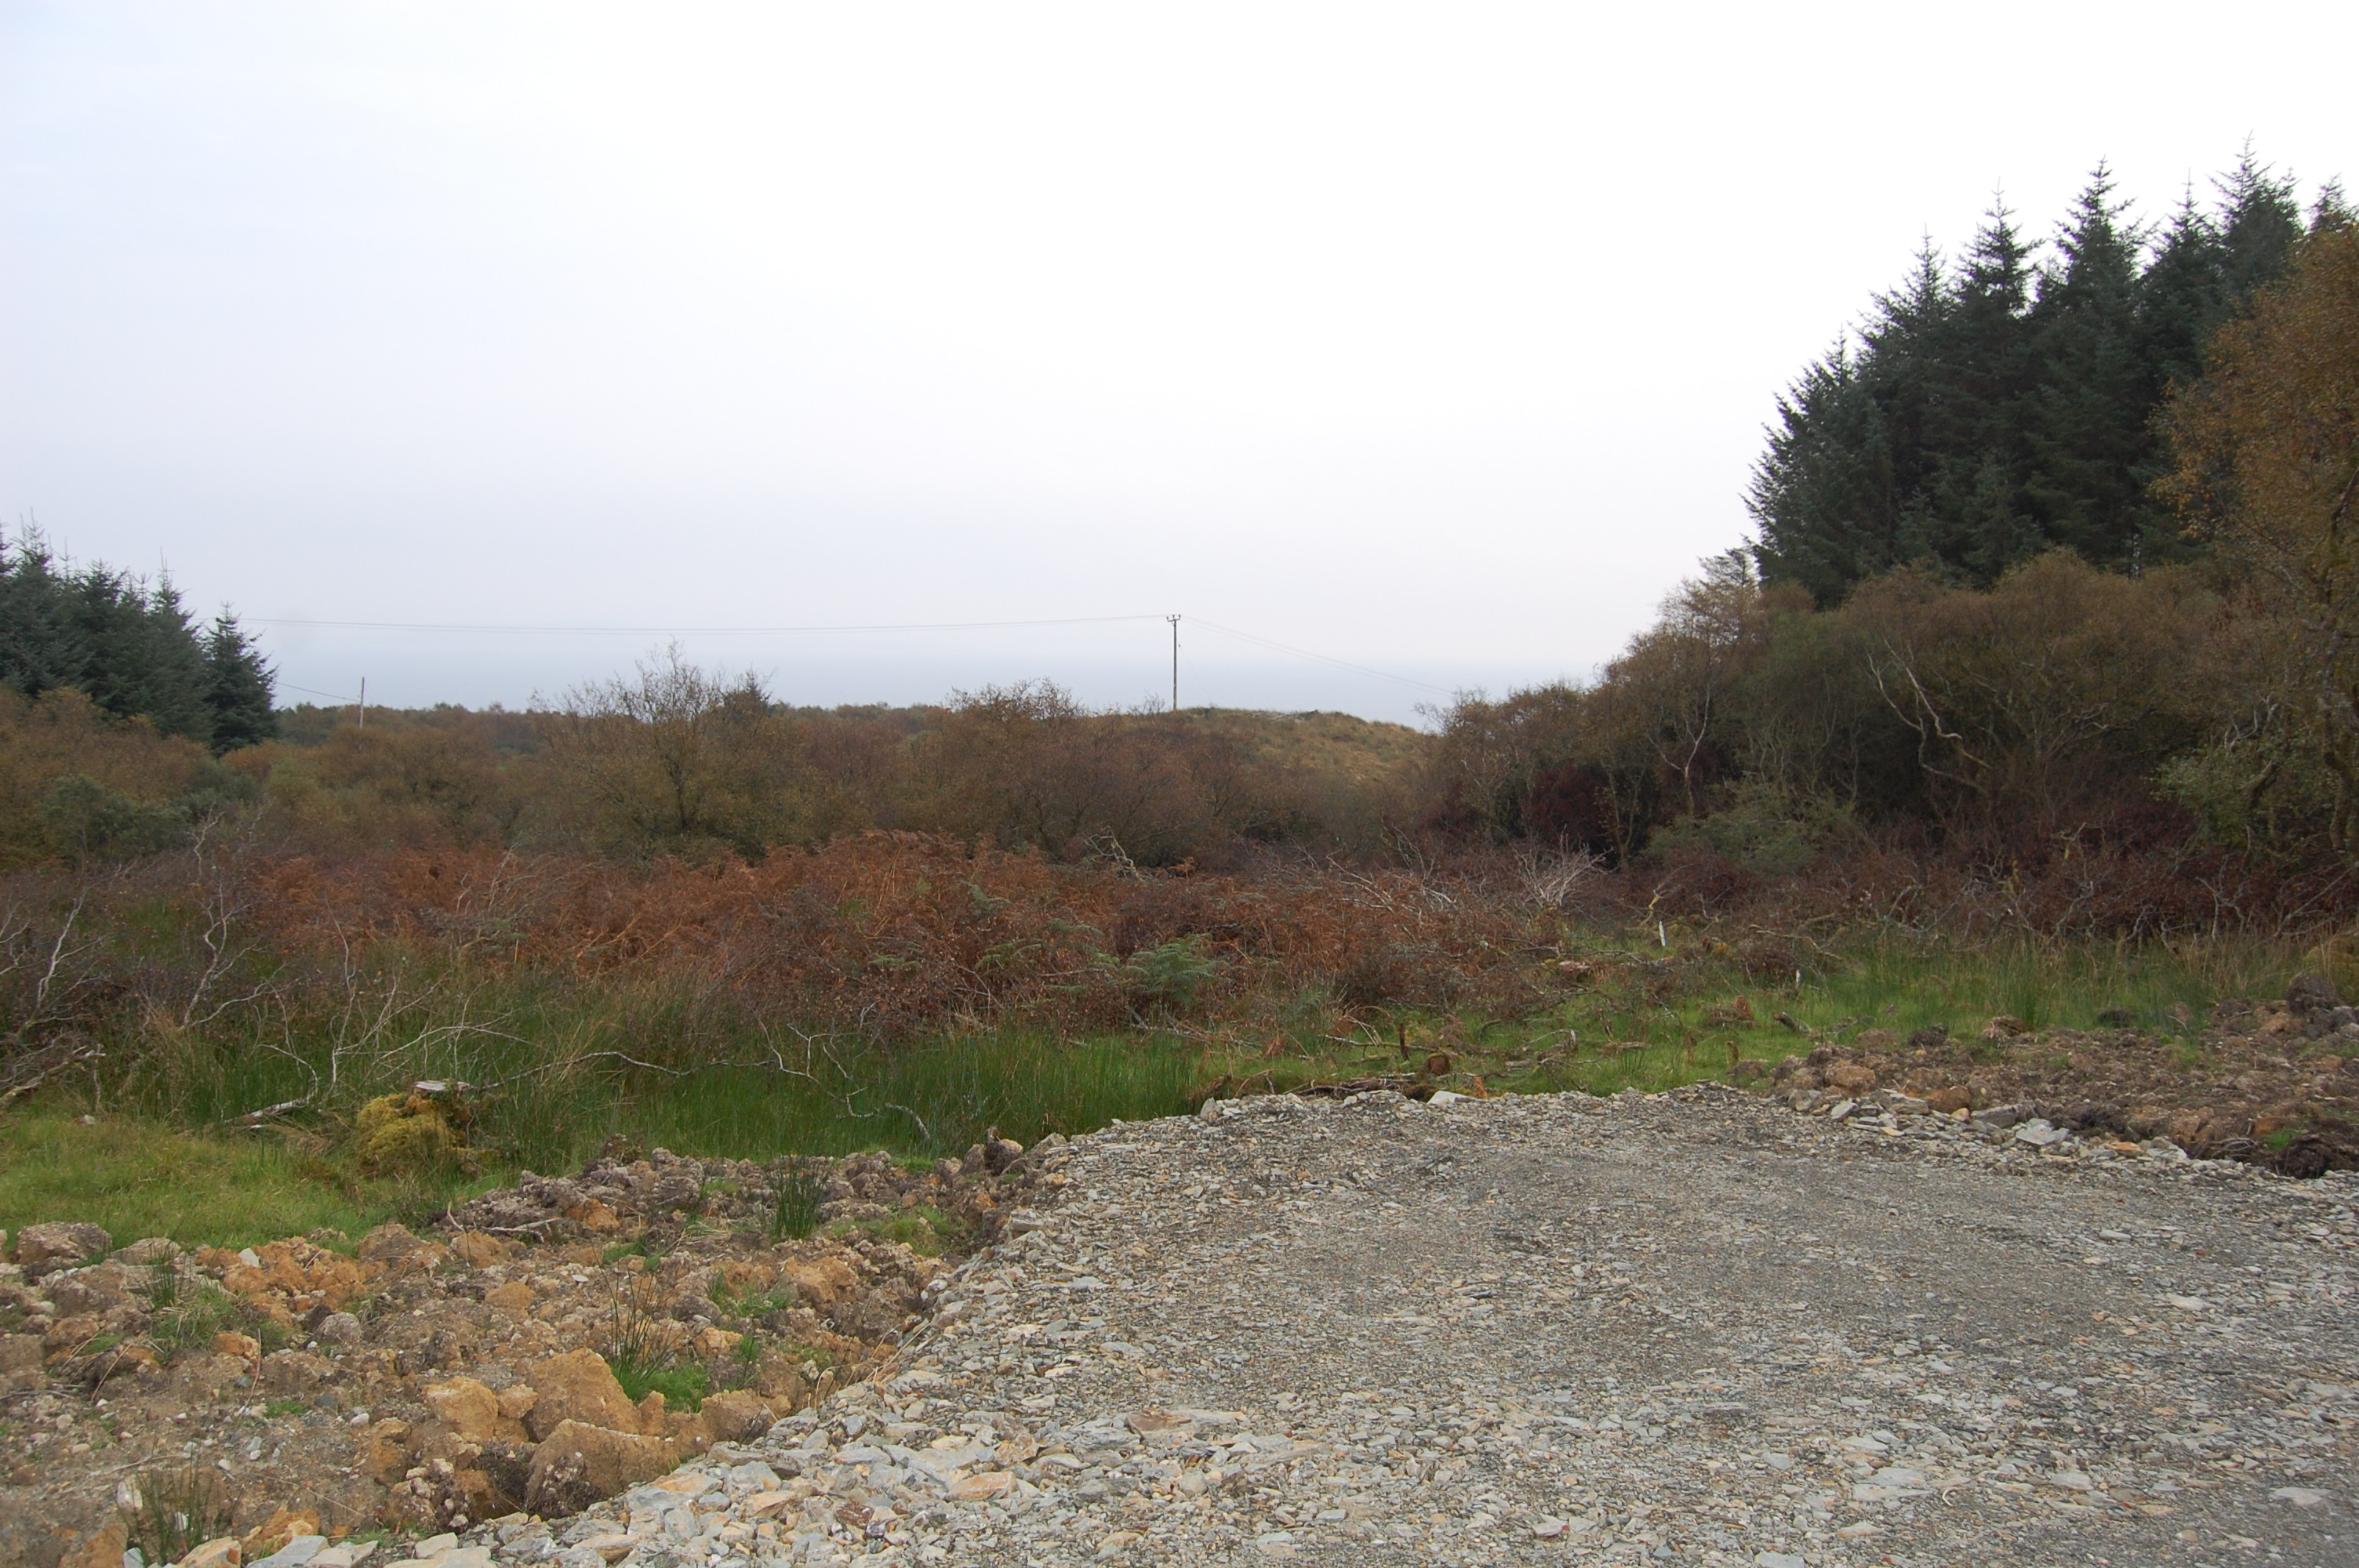 South Torresdale, eastern Kintyre, Argyll